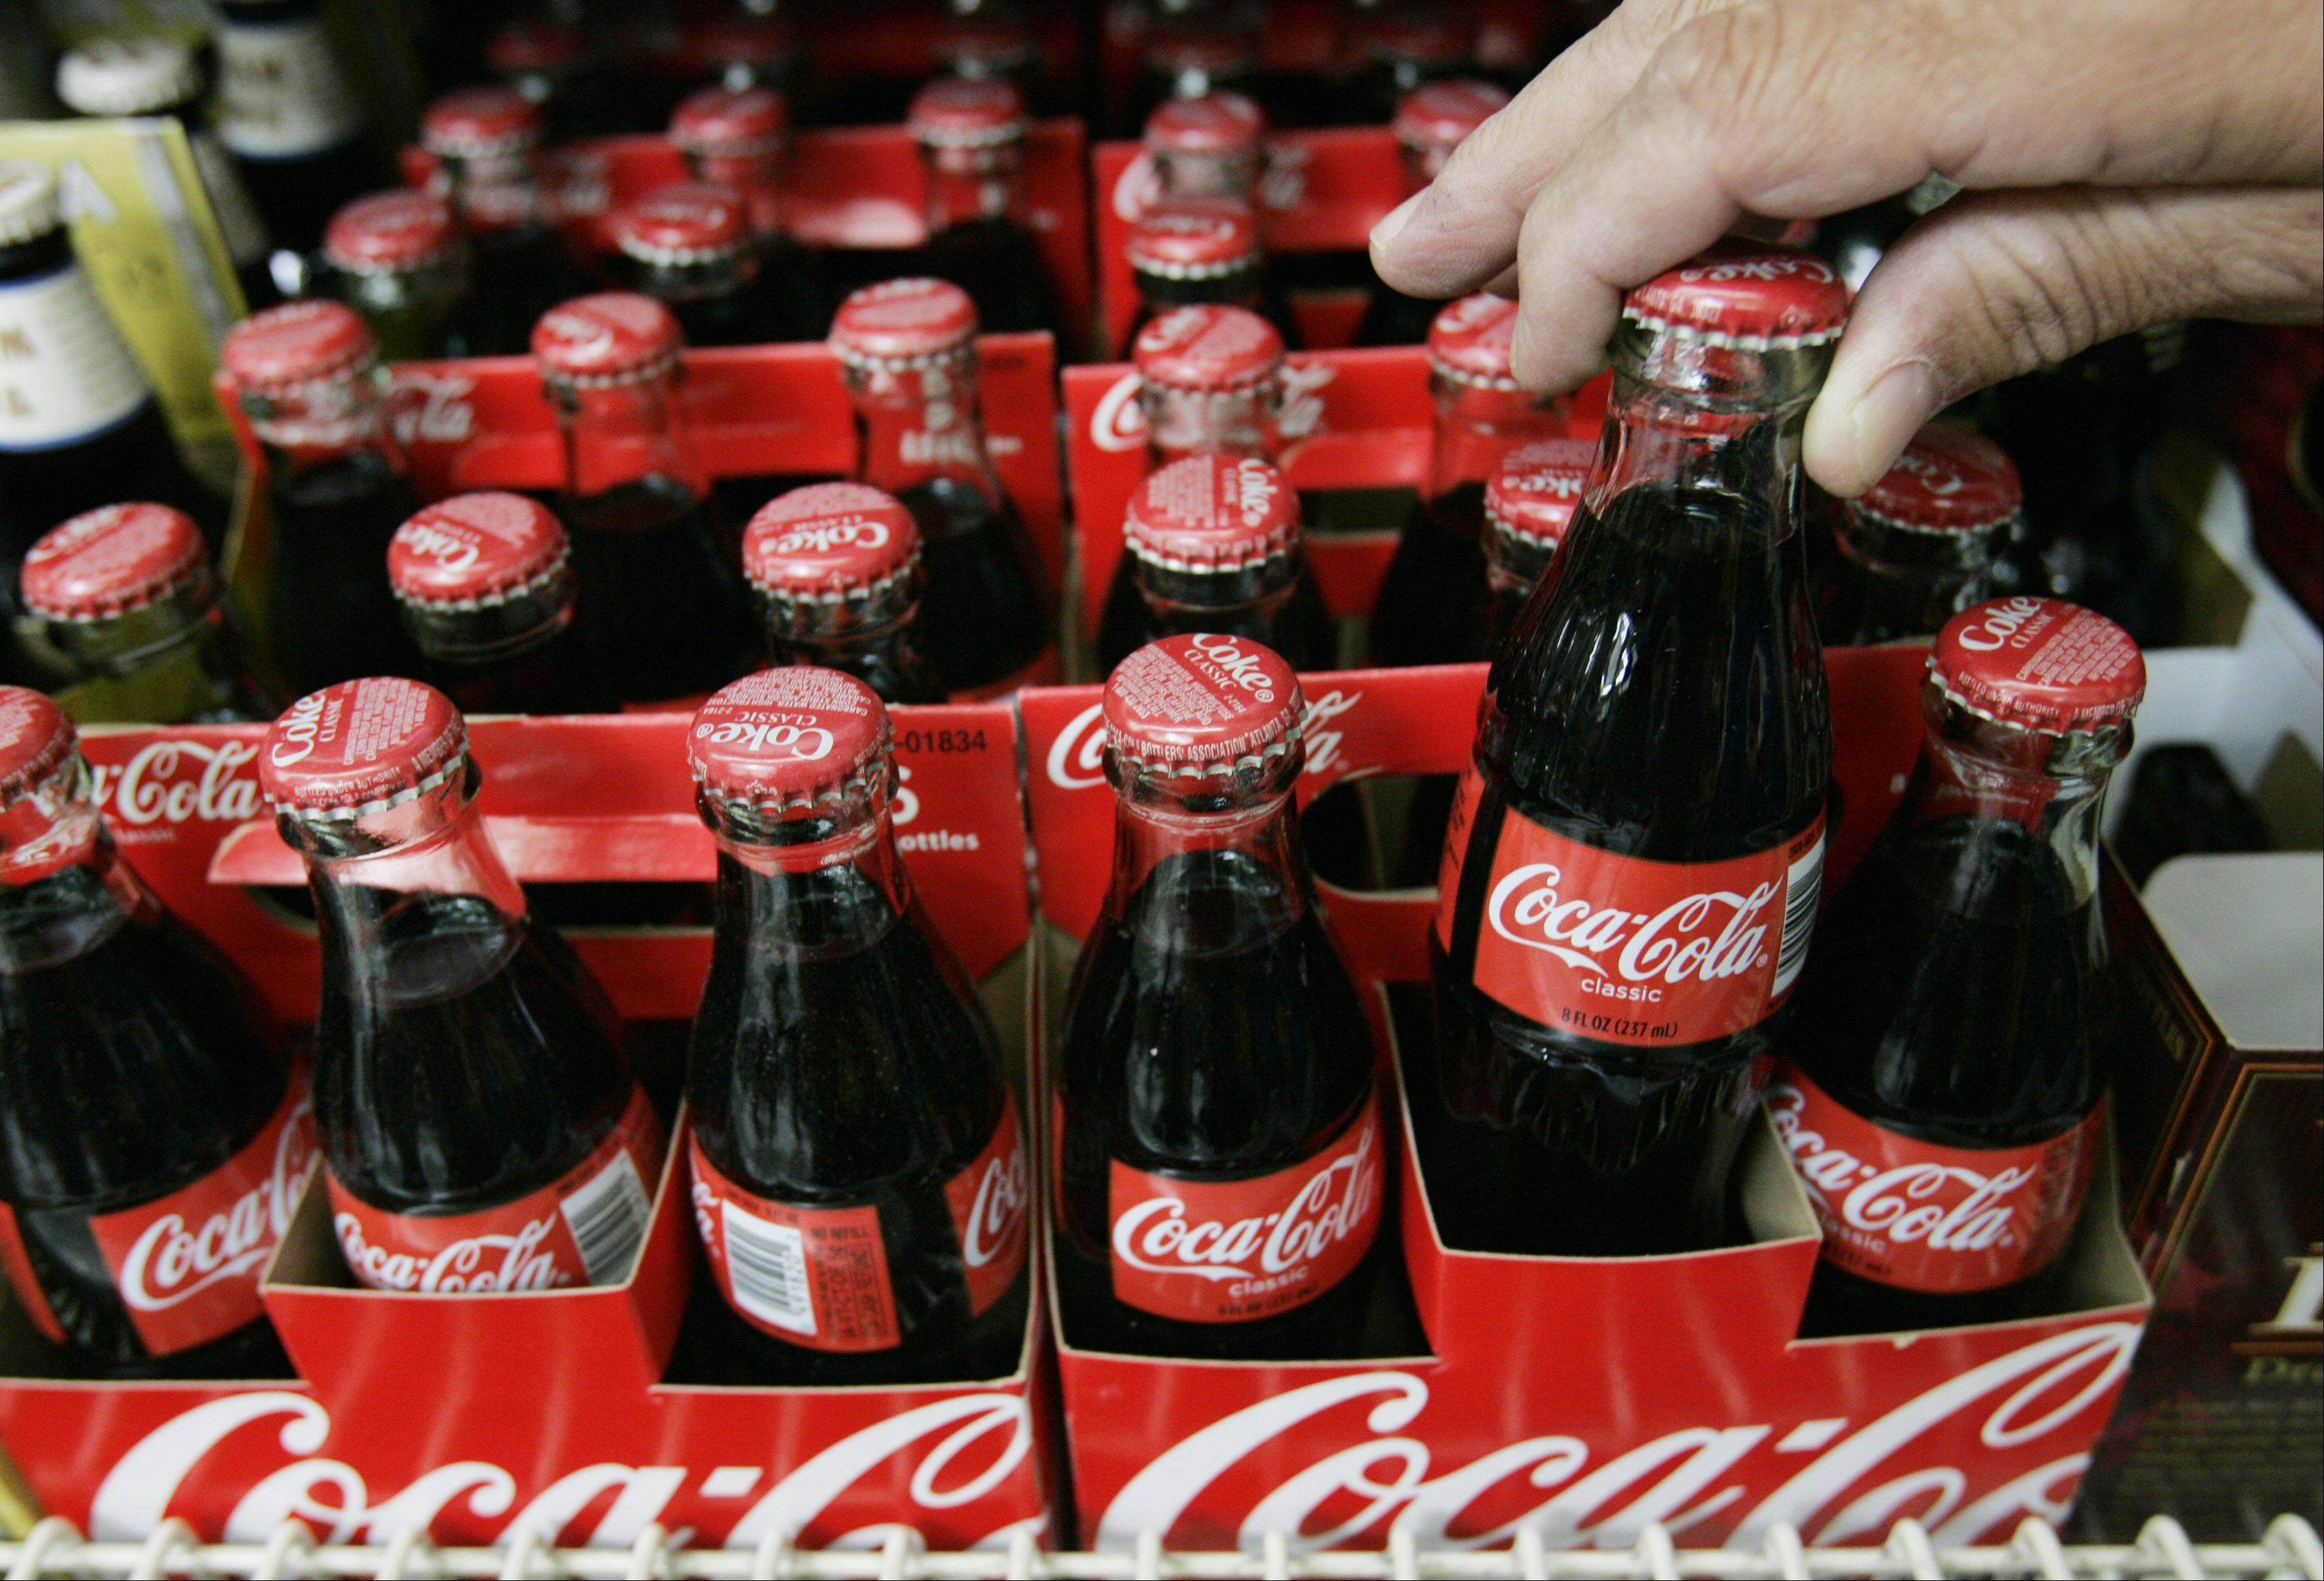 Coca-Cola says it's cutting 750 jobs in the U.S. as it continues to streamline its business.